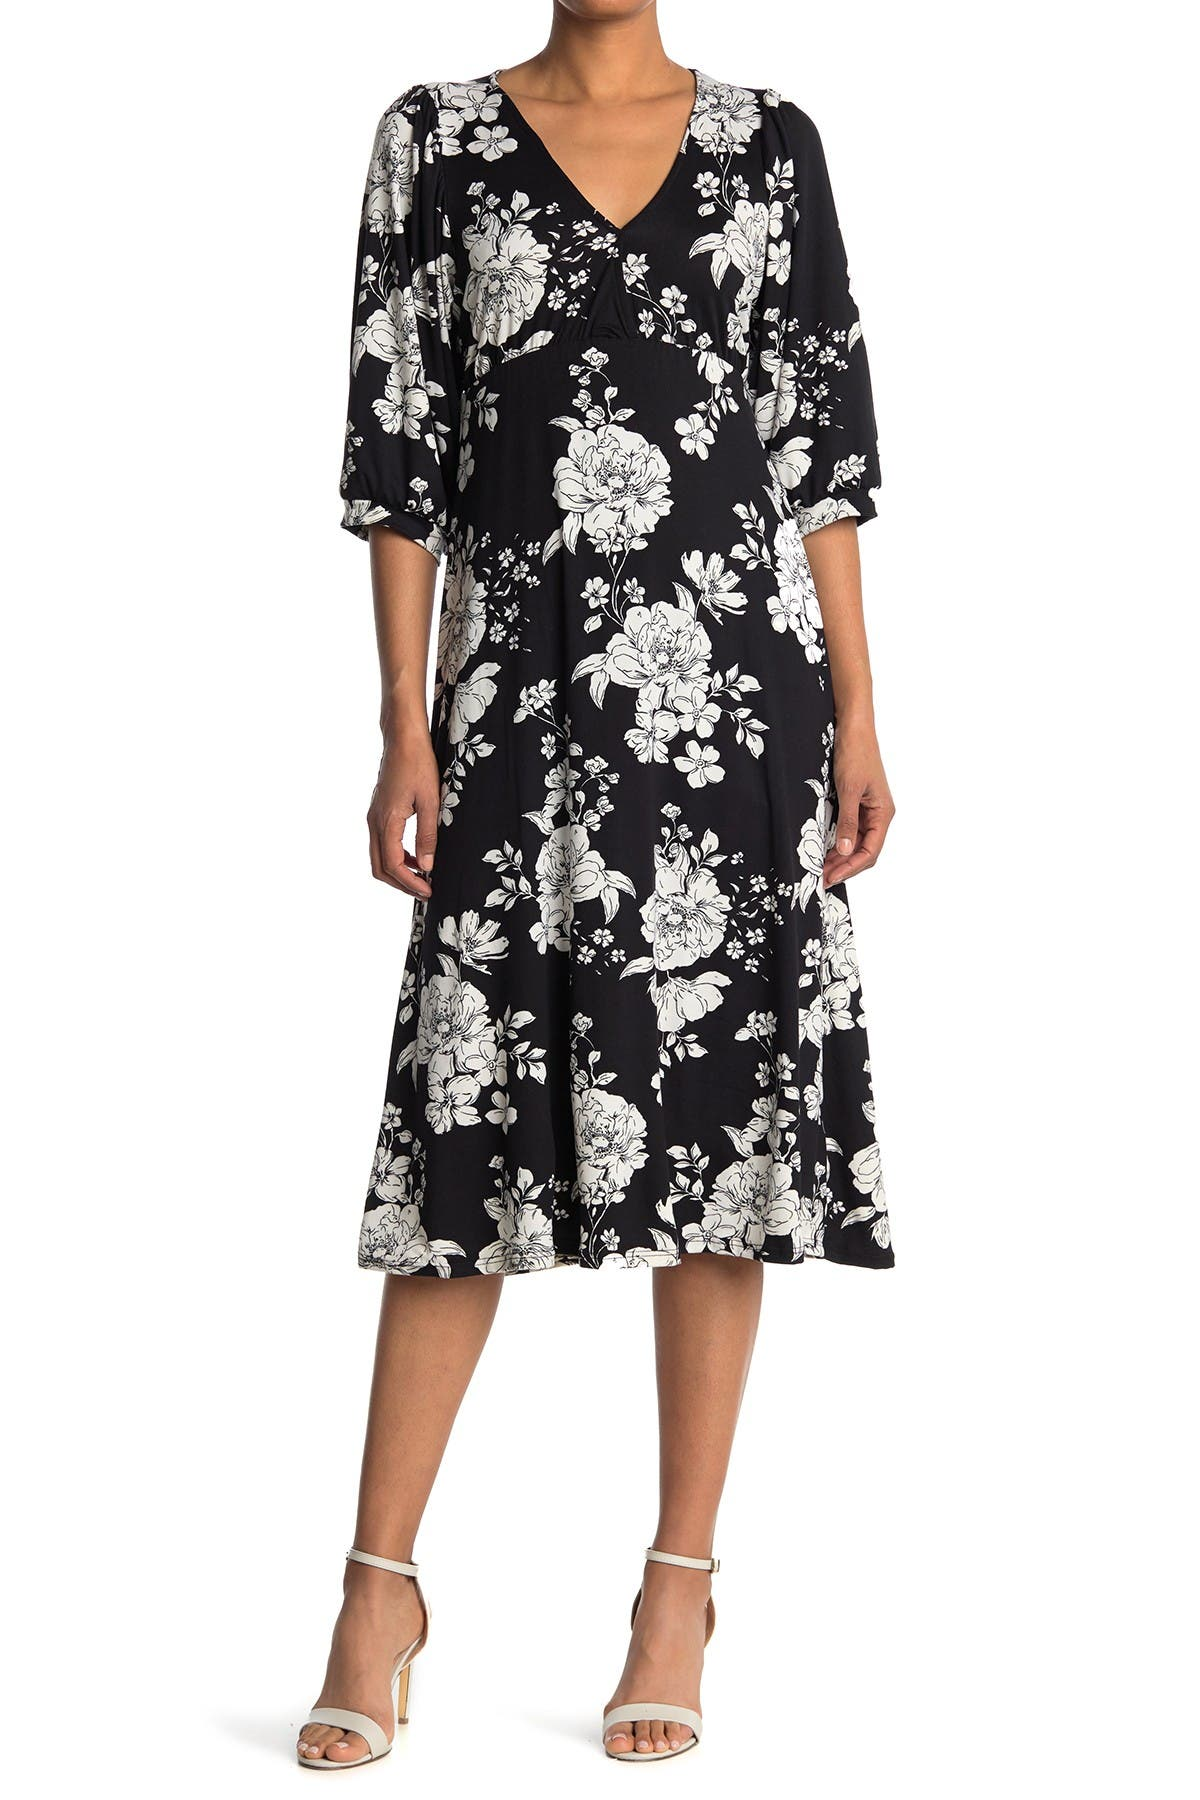 Image of Velvet Torch Floral Print V-Neck Dress